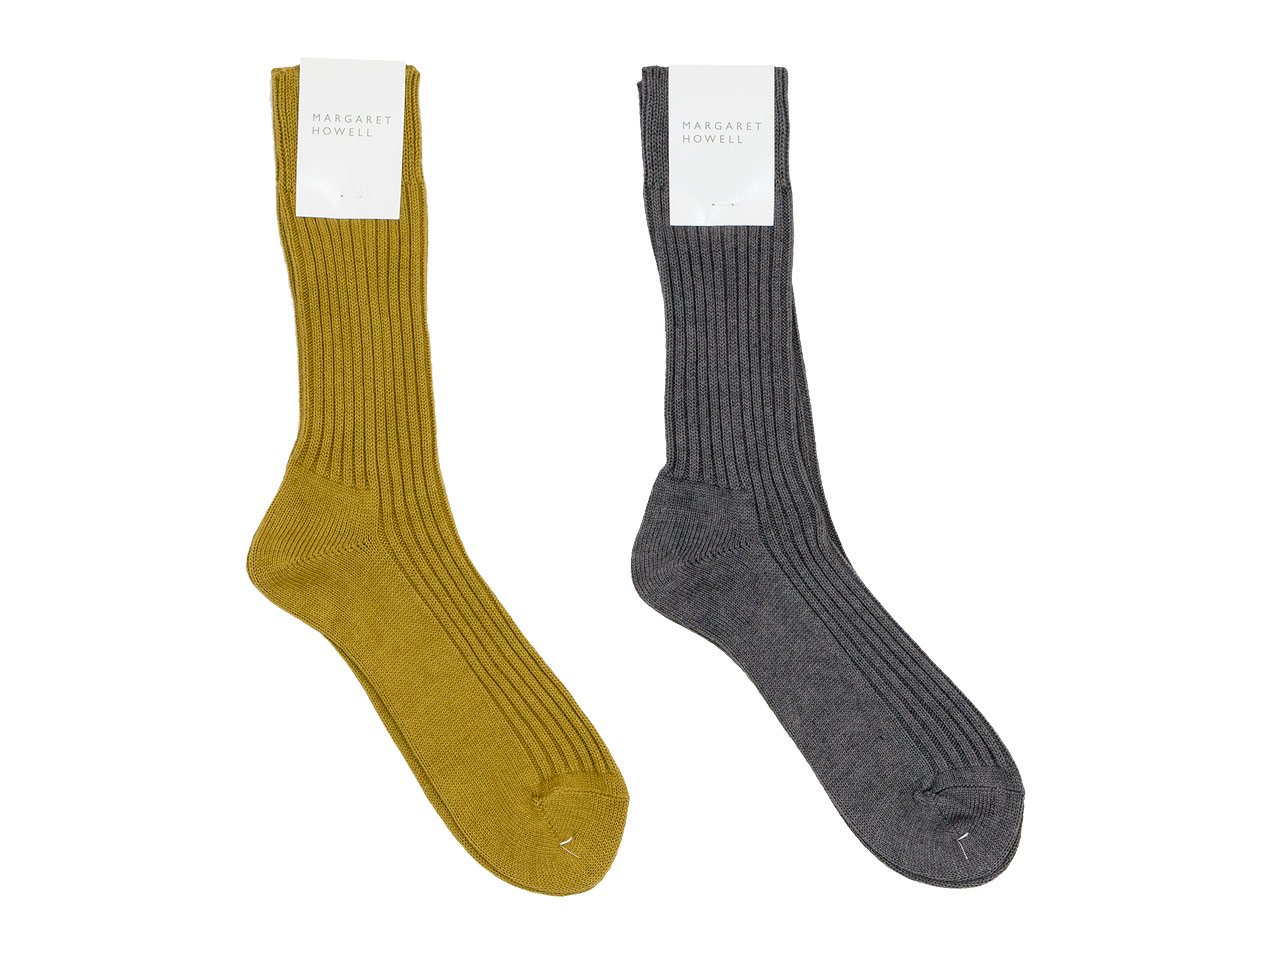 MARGARET HOWELL COTTON CASHMERE SOCKS 〔メンズ〕